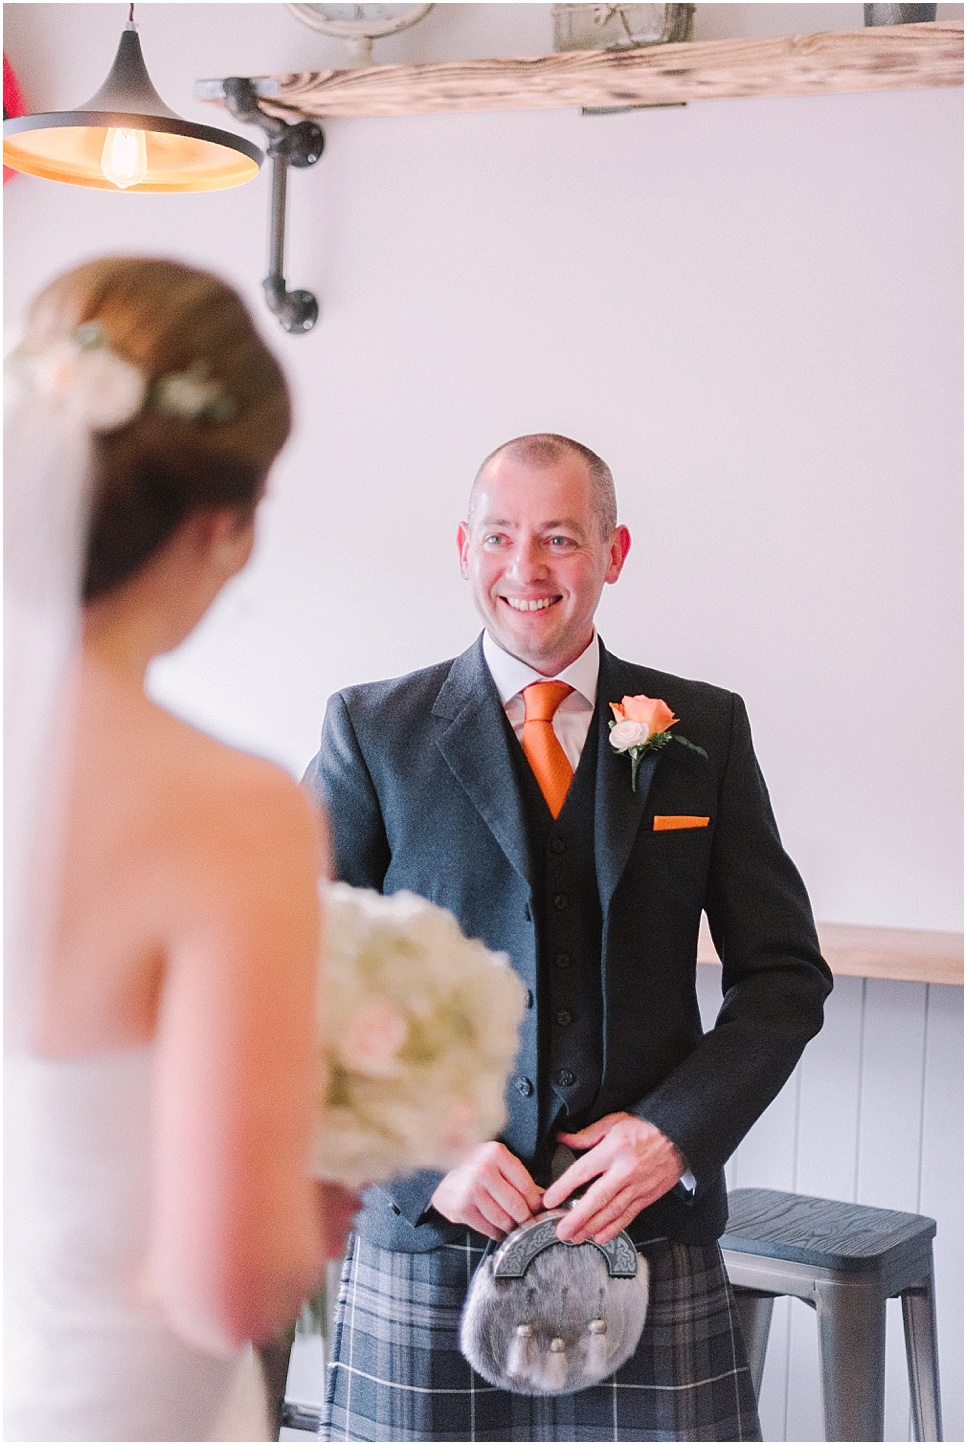 mareikemurray_wedding_photography_linlithgow_burgh_halls_031.jpg